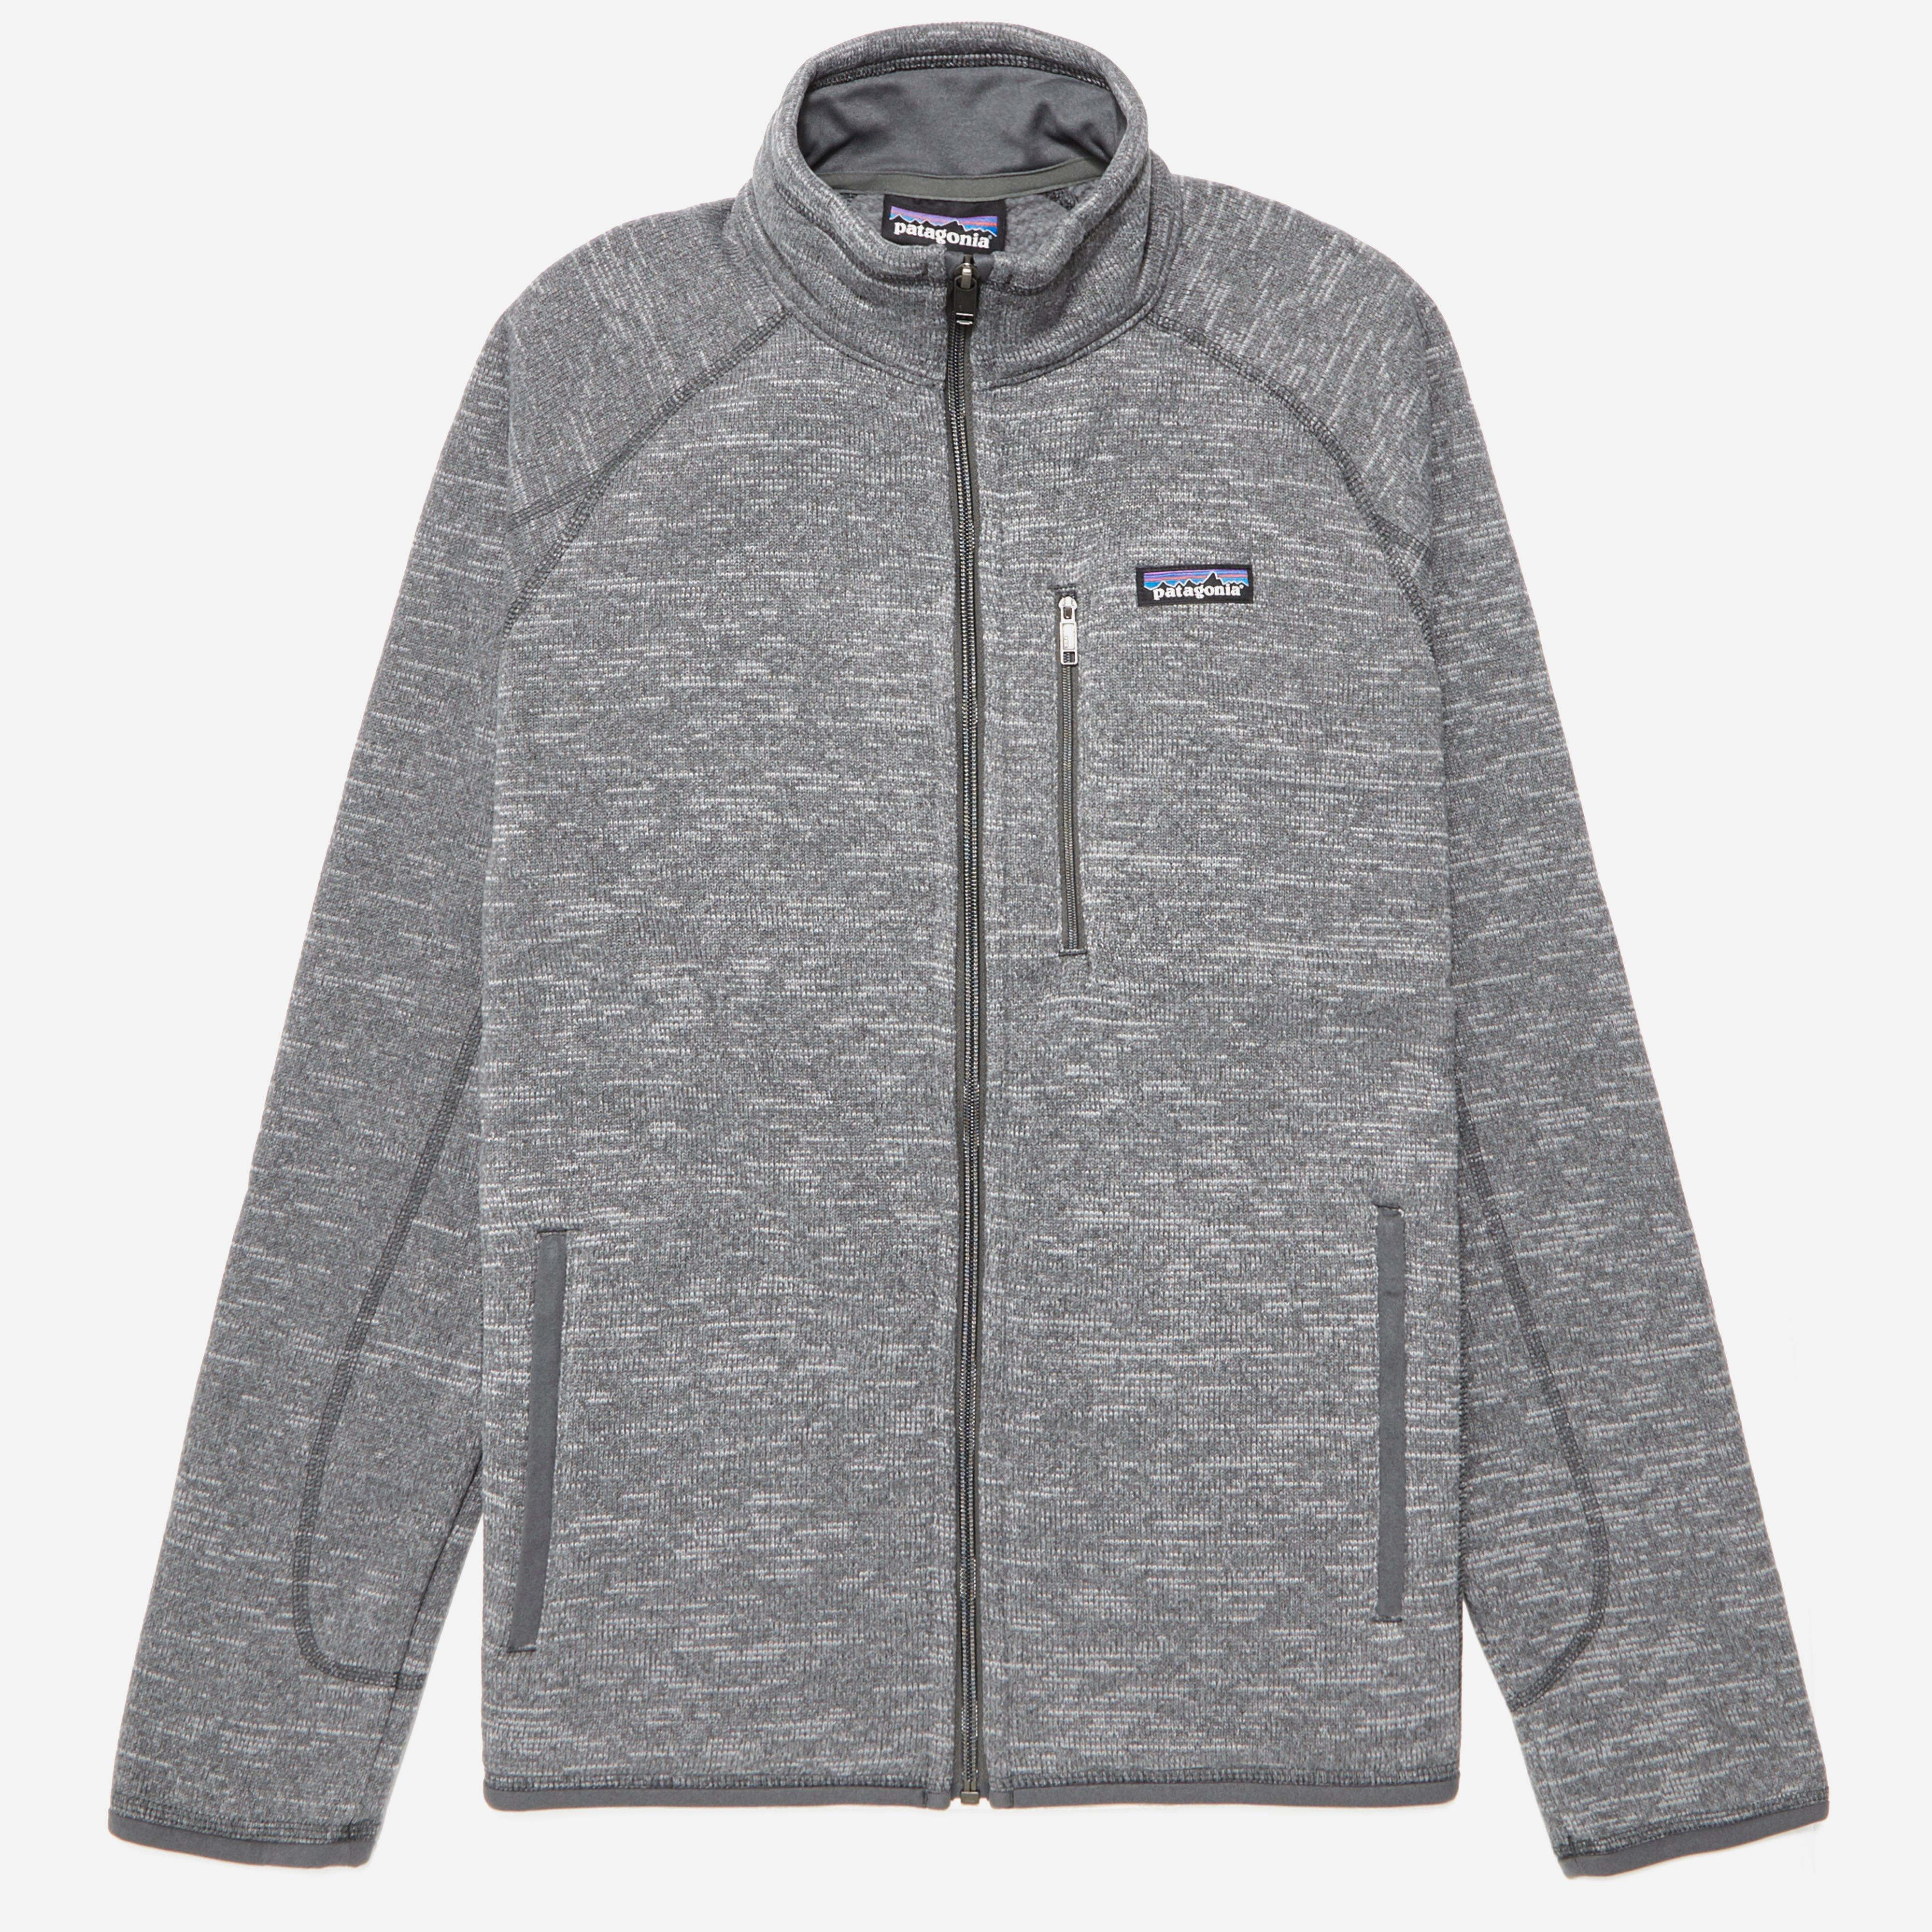 product offerings patagonia We are responsible for all the workers who make our goods and for all  a labor- rights group revealed that kathie lee gifford's clothing line for.